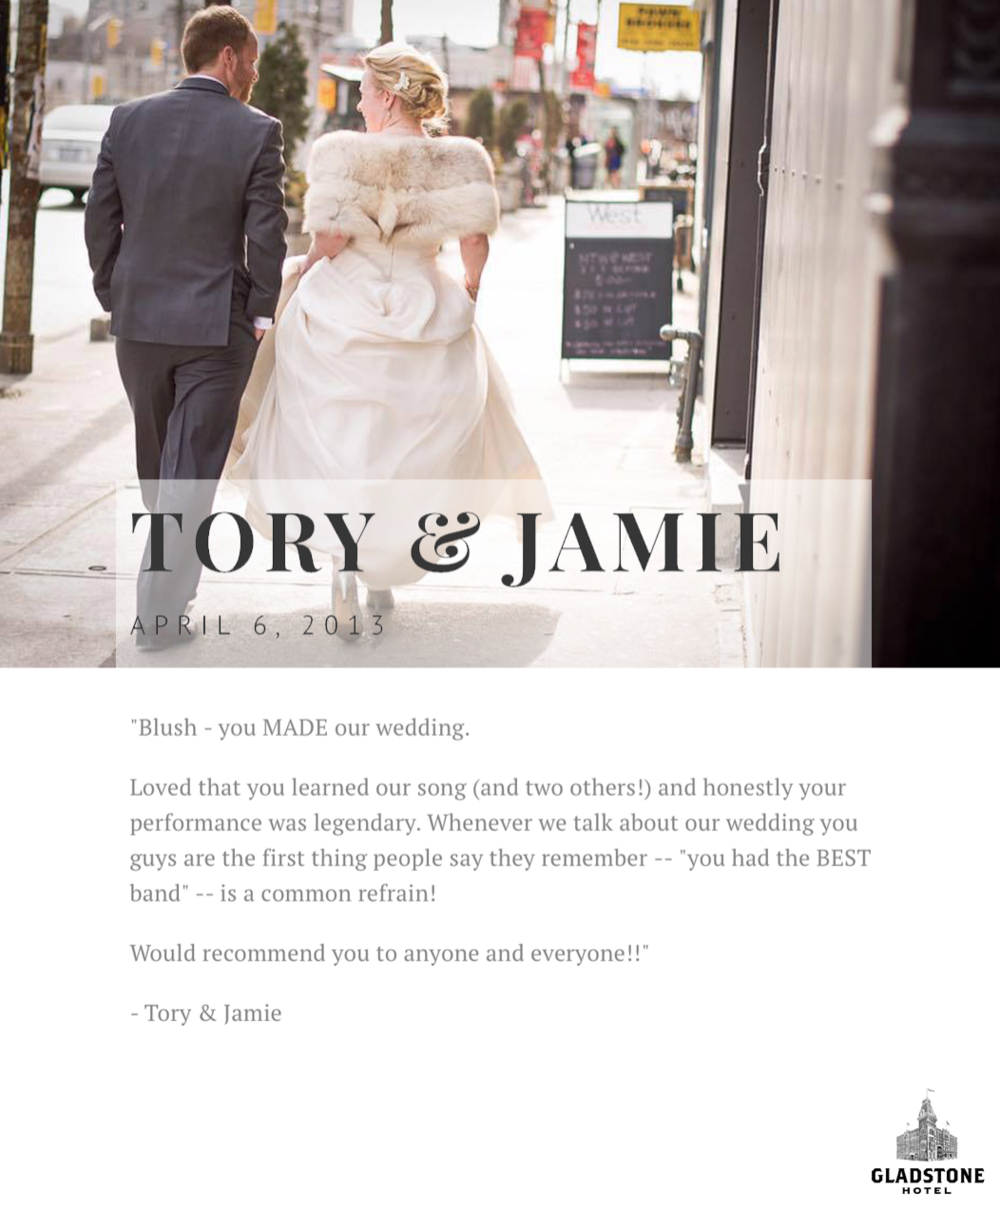 jamie+and+tory+zimmerman+lovekin+gladstone+hotel+wedding+event+bride+groom+toronto+blush+band+premium+live+entertainment+music+top+40+cover+best.png